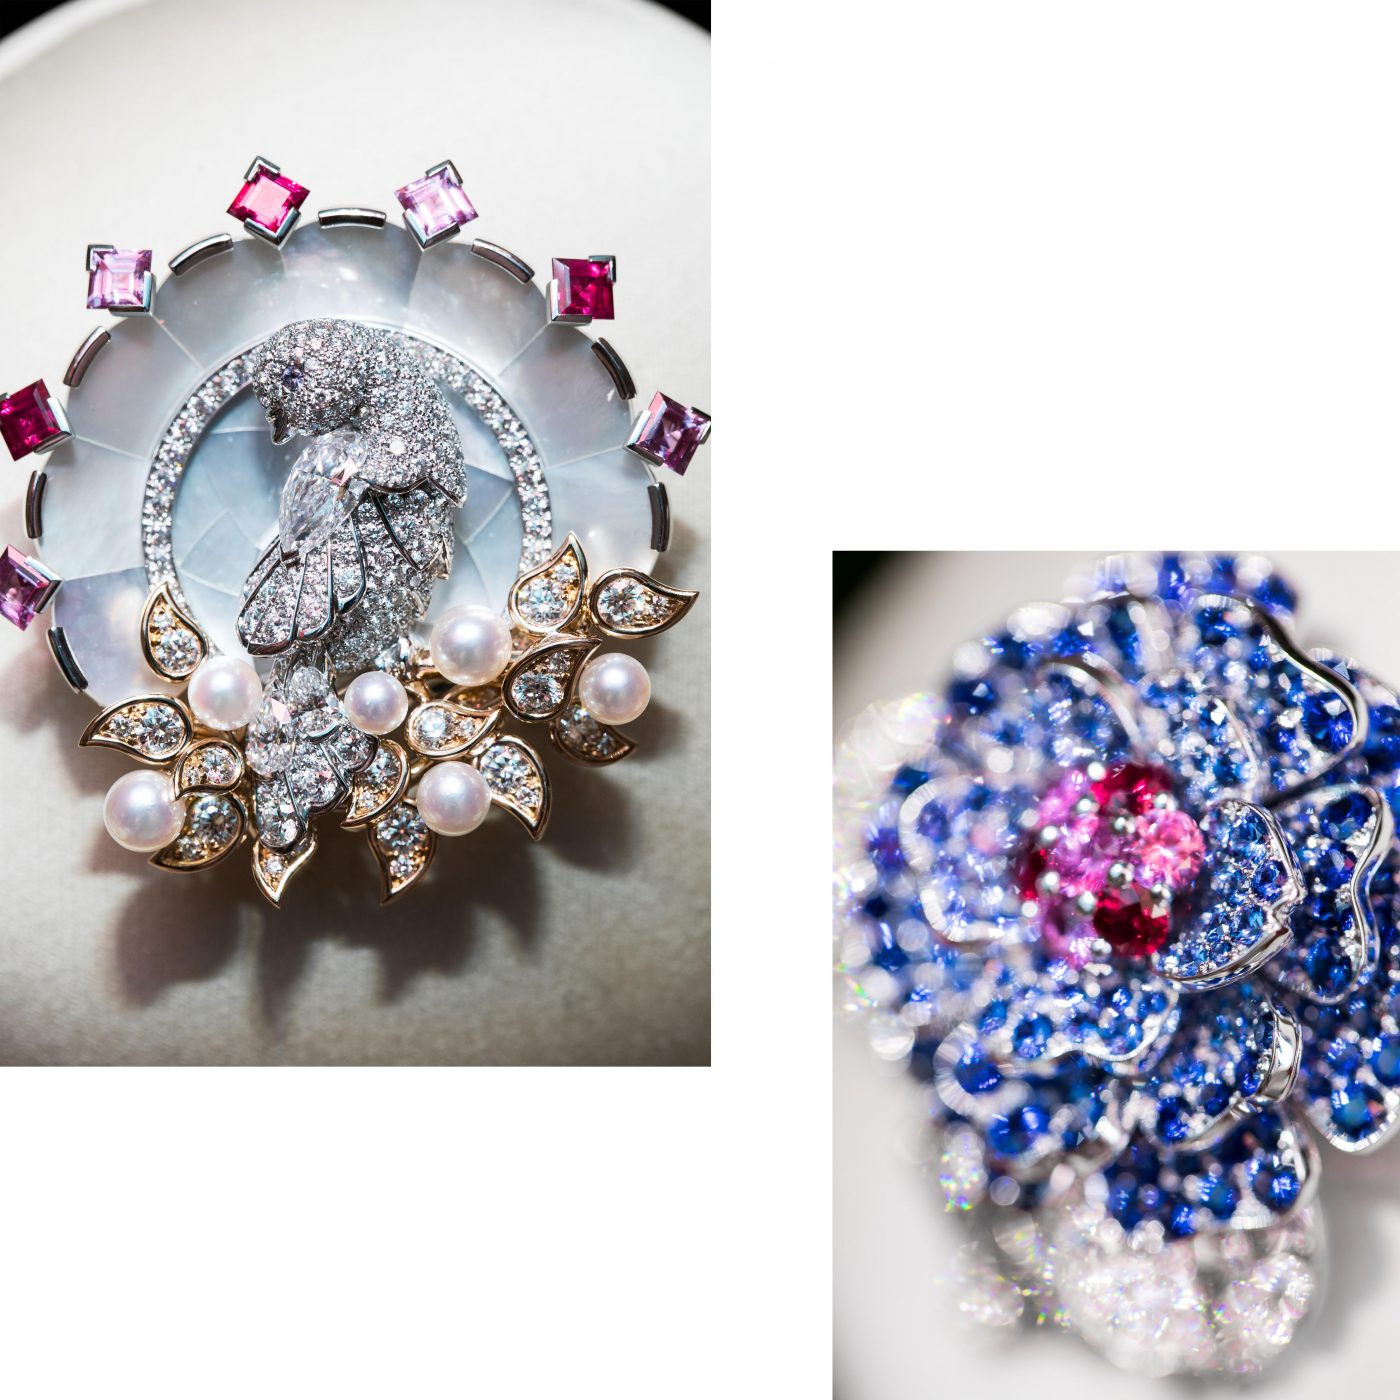 ", VAN CLEEF & ARPELS ""ROMEO & JULIET"" HIGH JEWELLERY COLLECTION, PARIS COUTURE WEEK 2019, Victoria's Jewelry Box"